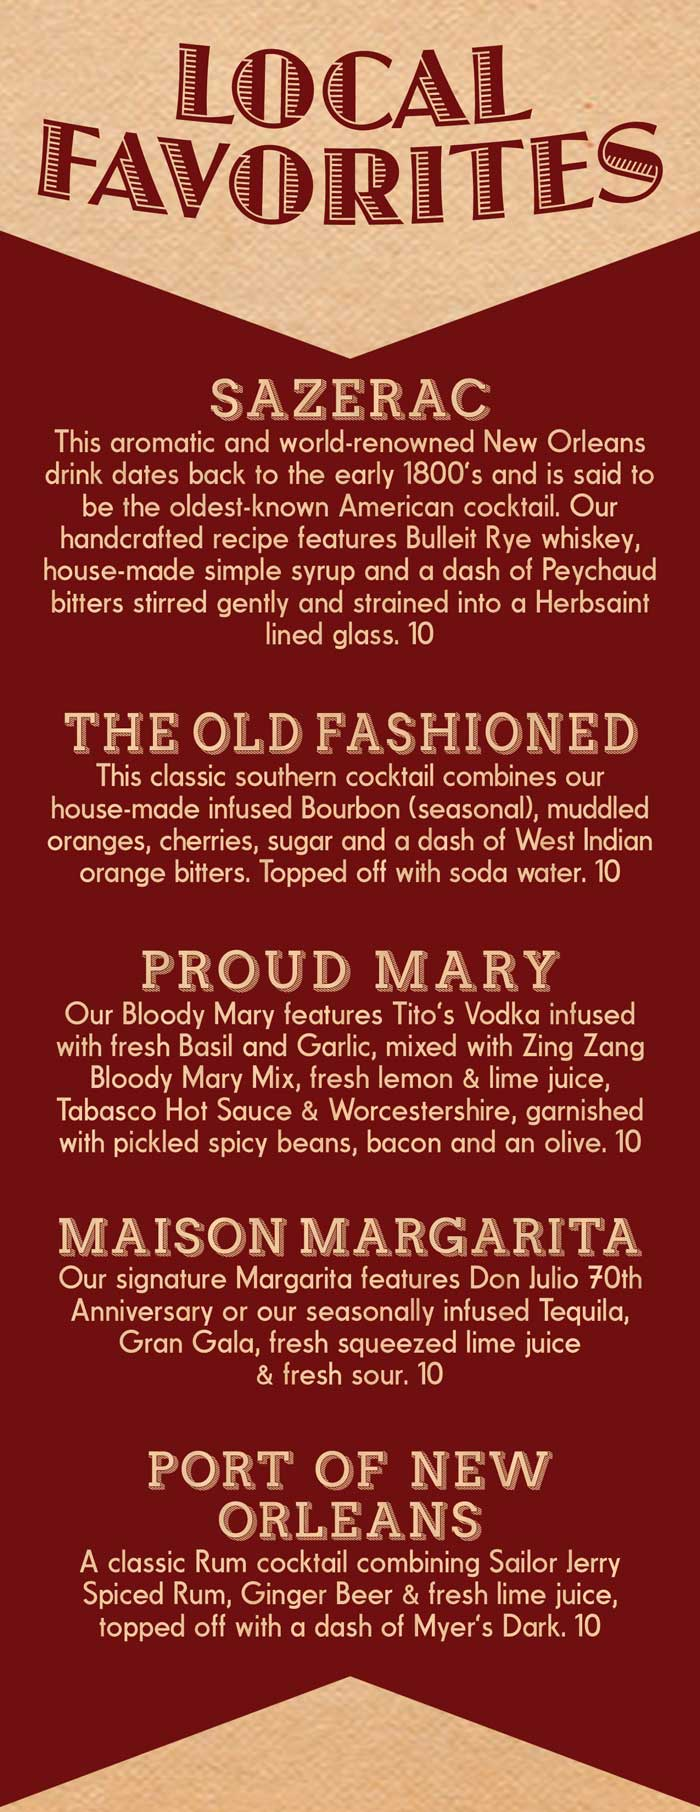 Local New Orleans Favorite Cocktails served at The Maison